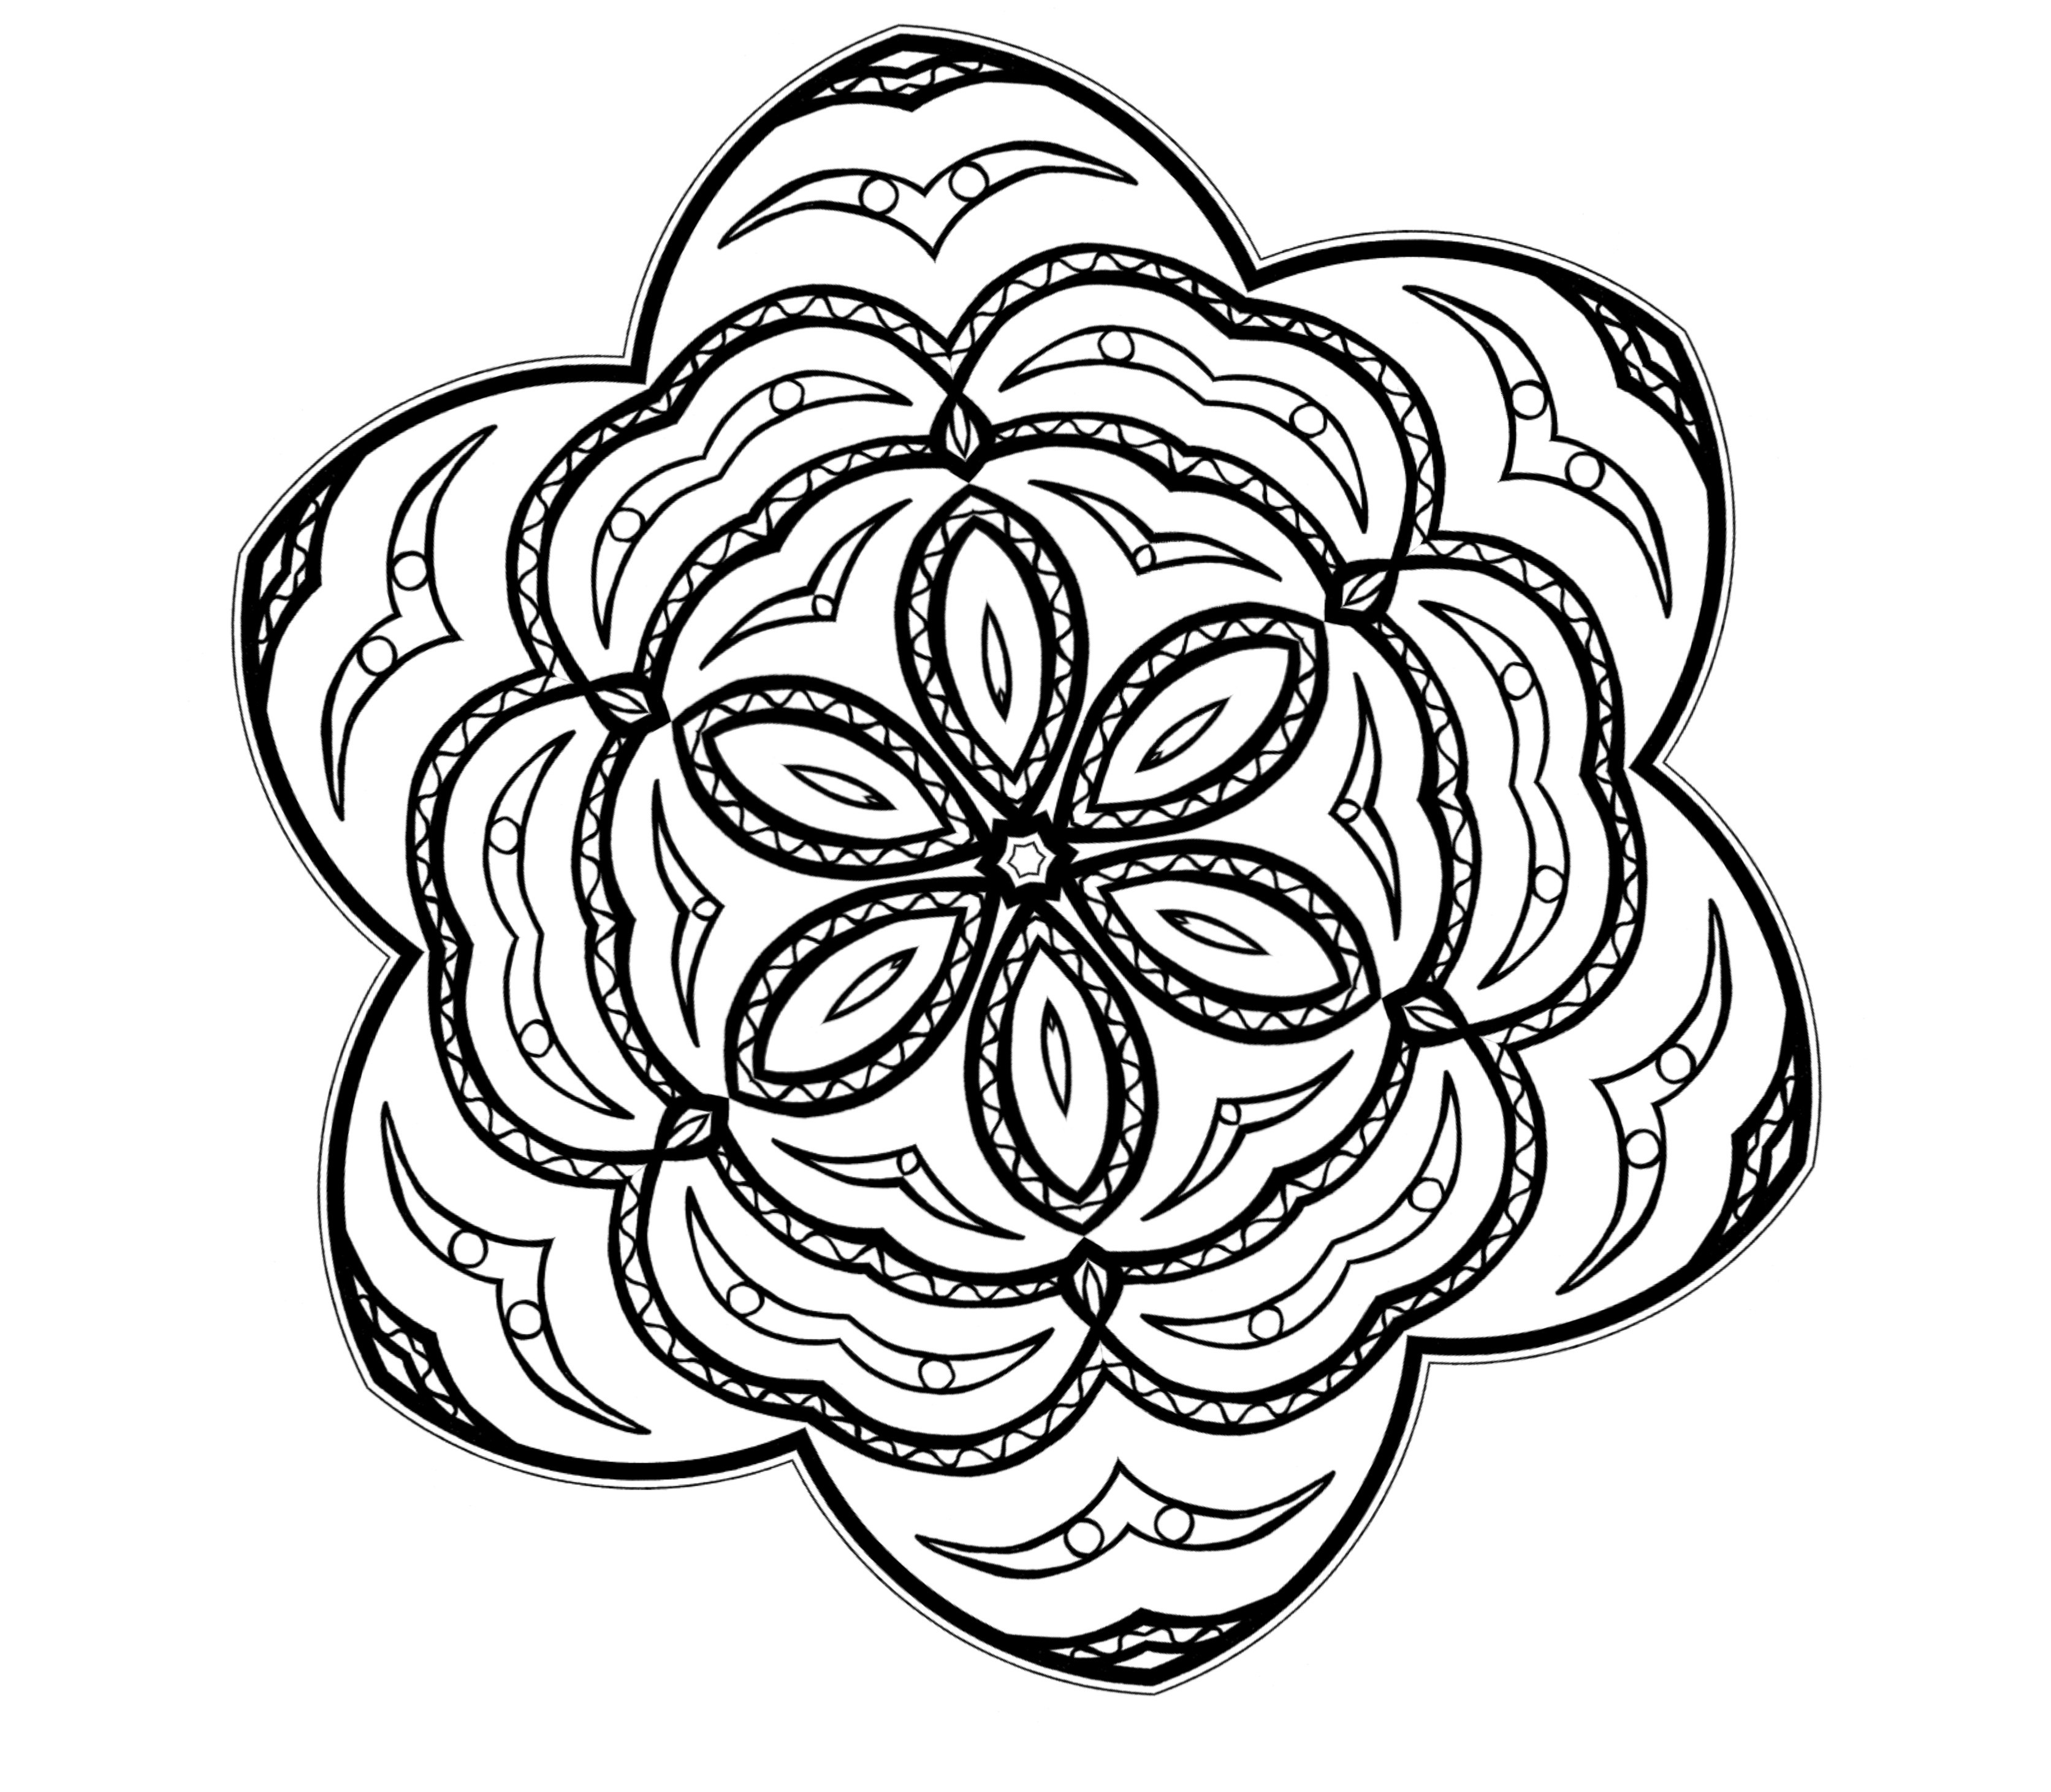 free coloring pages for teens free coloring pages for teens and adults pack 101 coloring pages teens coloring for free